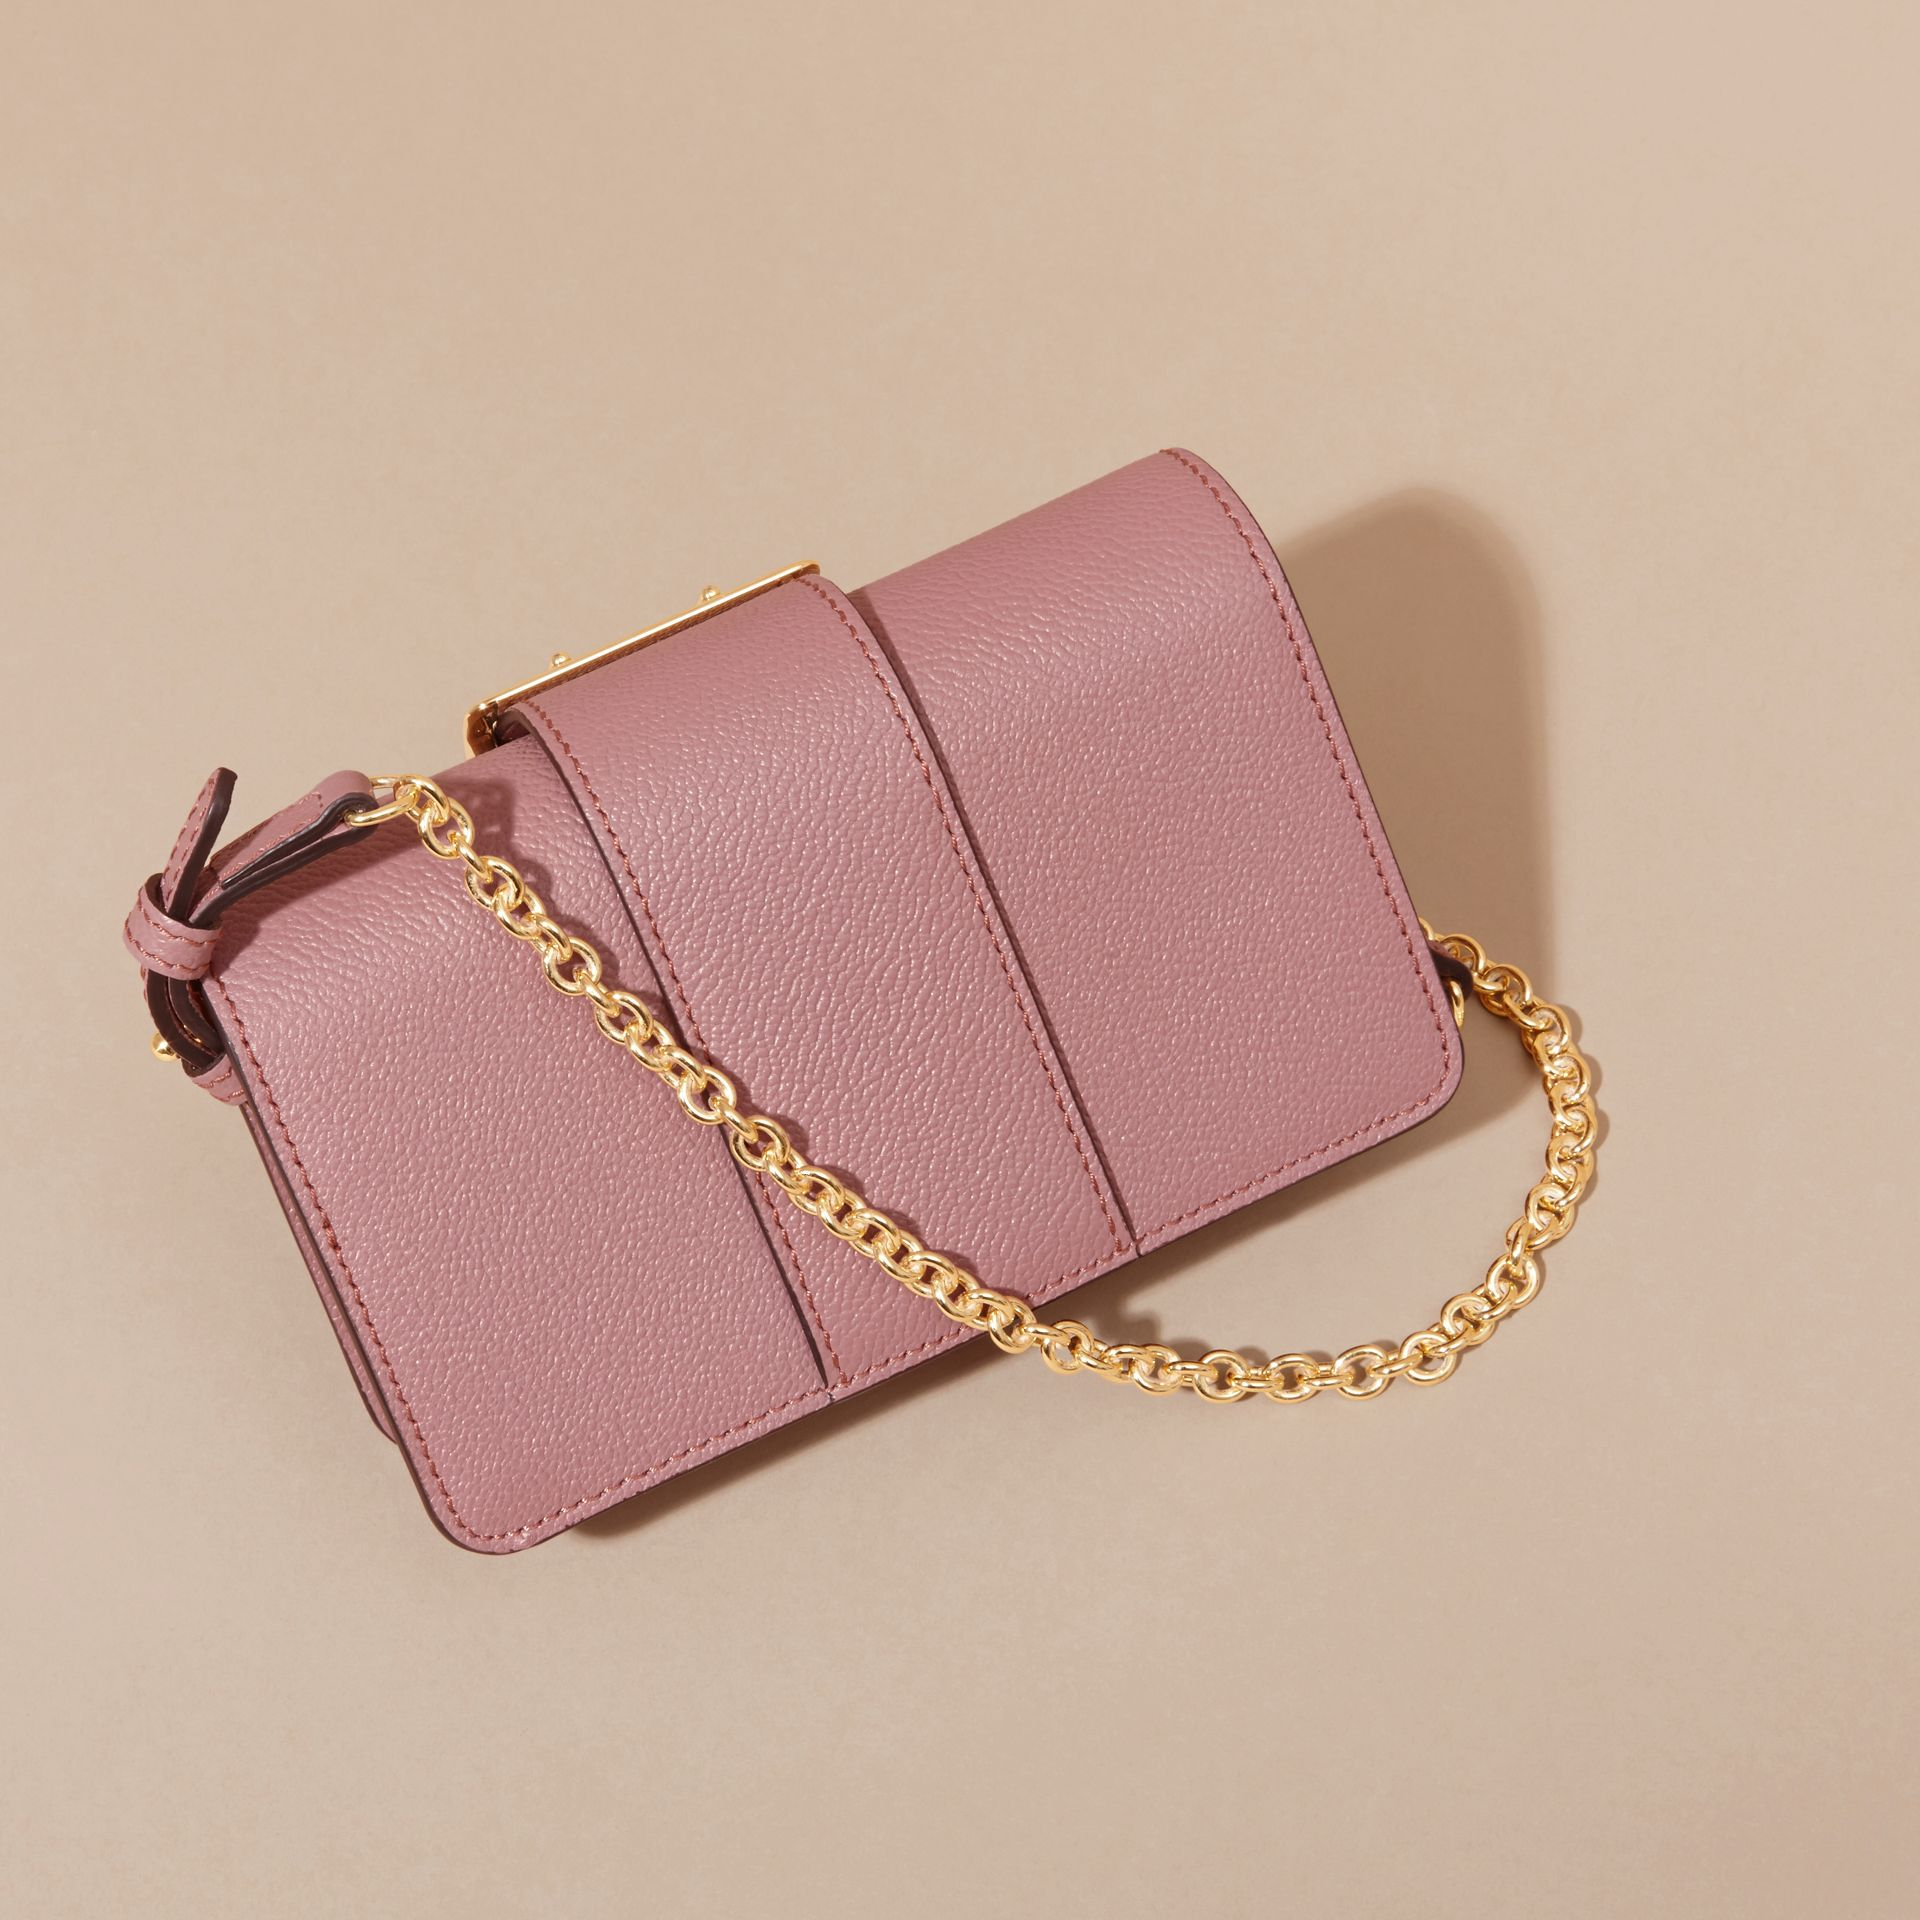 The Mini Buckle Bag in Grainy Leather Dusty Pink - gallery image 5